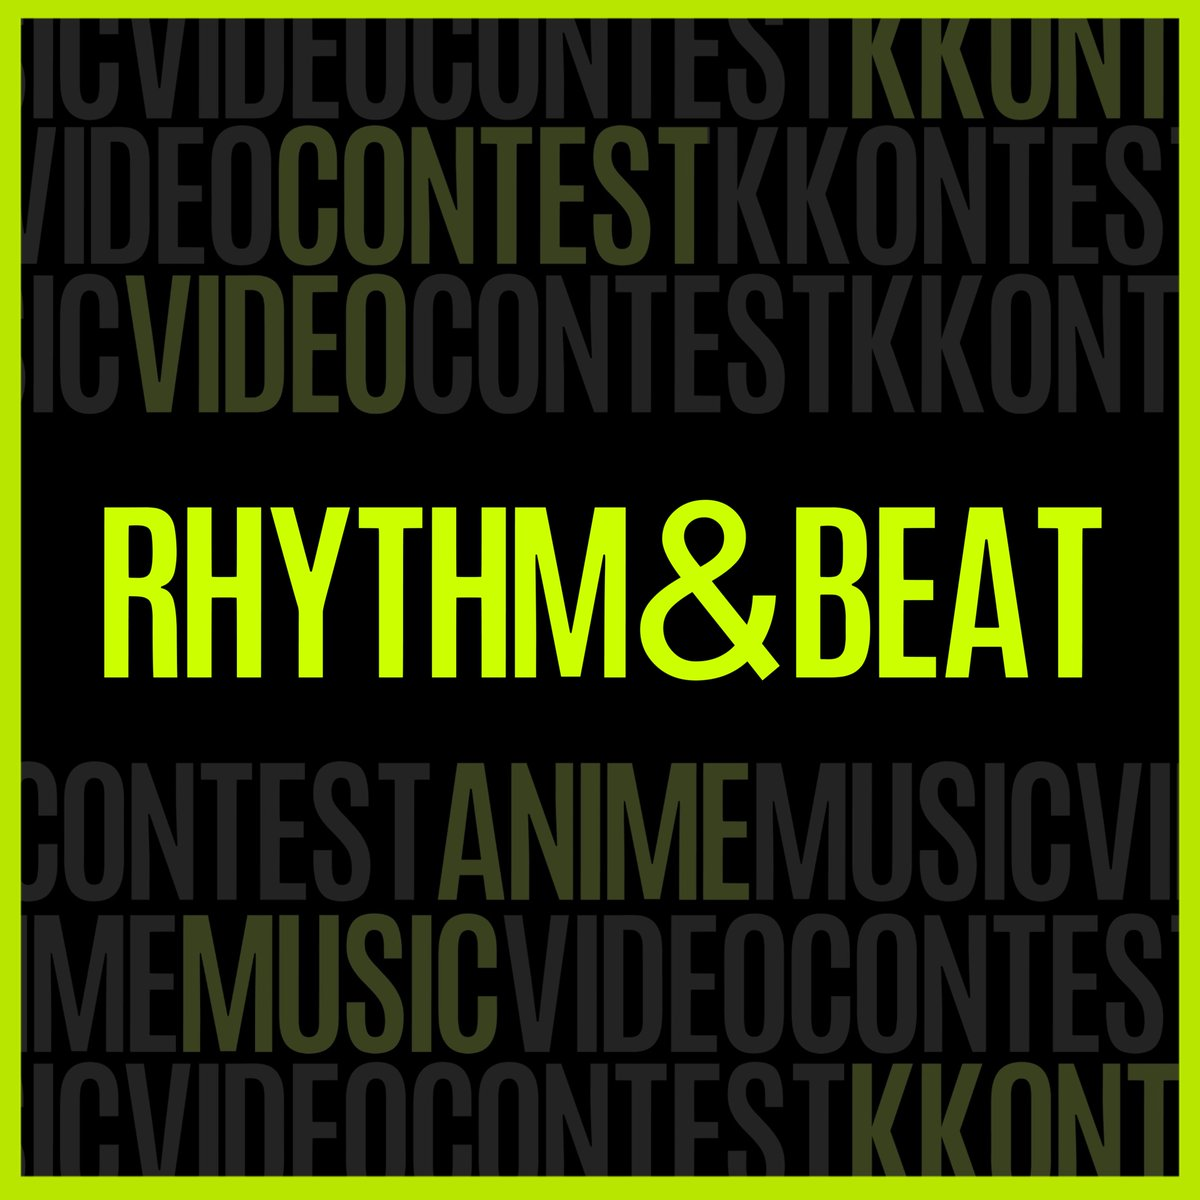 CATEGORY: RHYTHM & BEAT Your AMV must be longer than 1 minute Such entries generally have a catchy rhythmic beat matched to flashy on-screen action/comedy/dance. AMVs that are just fun or don't seem to belong anywhere else. https://kkontest.pl/   #kkontest #amvcontest #amvpic.twitter.com/ZDBXh1ThsC